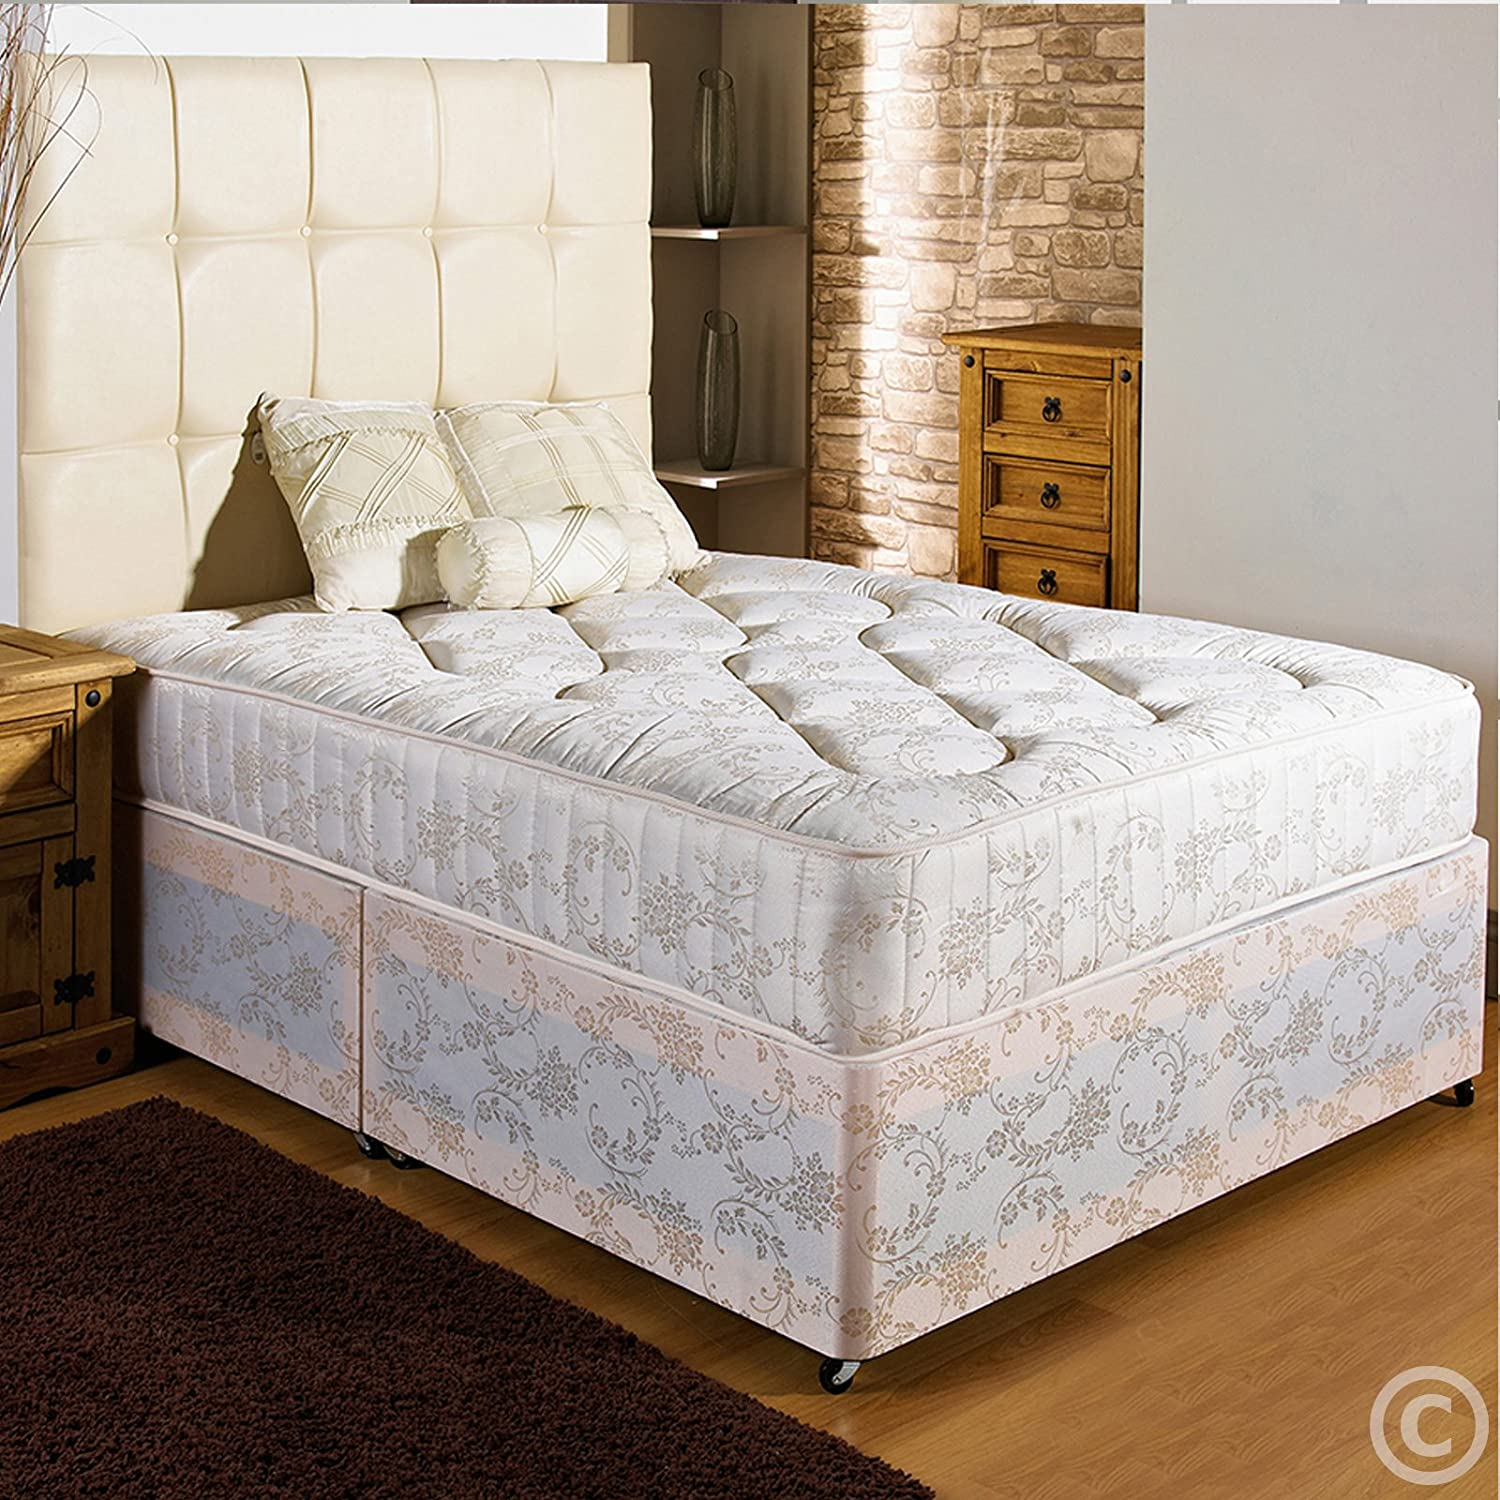 4Ft Small Double End Drawer Hf4you Divan Bed Visco